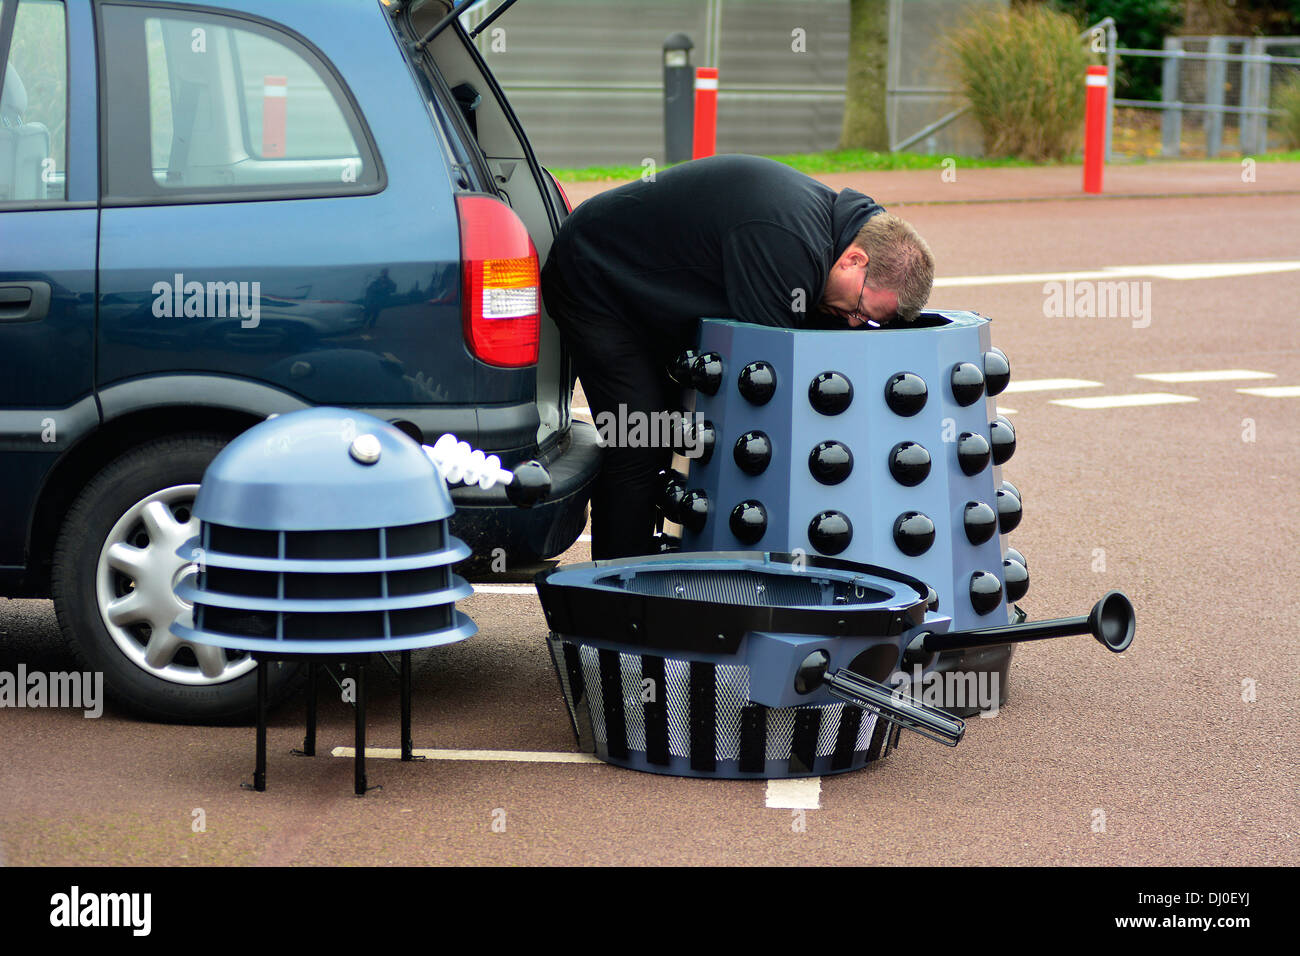 Ray Hyde from Barnsley assembles one of the 20 Daleks displayed at the 'Science of the Timelords' event are assembled Stock Photo